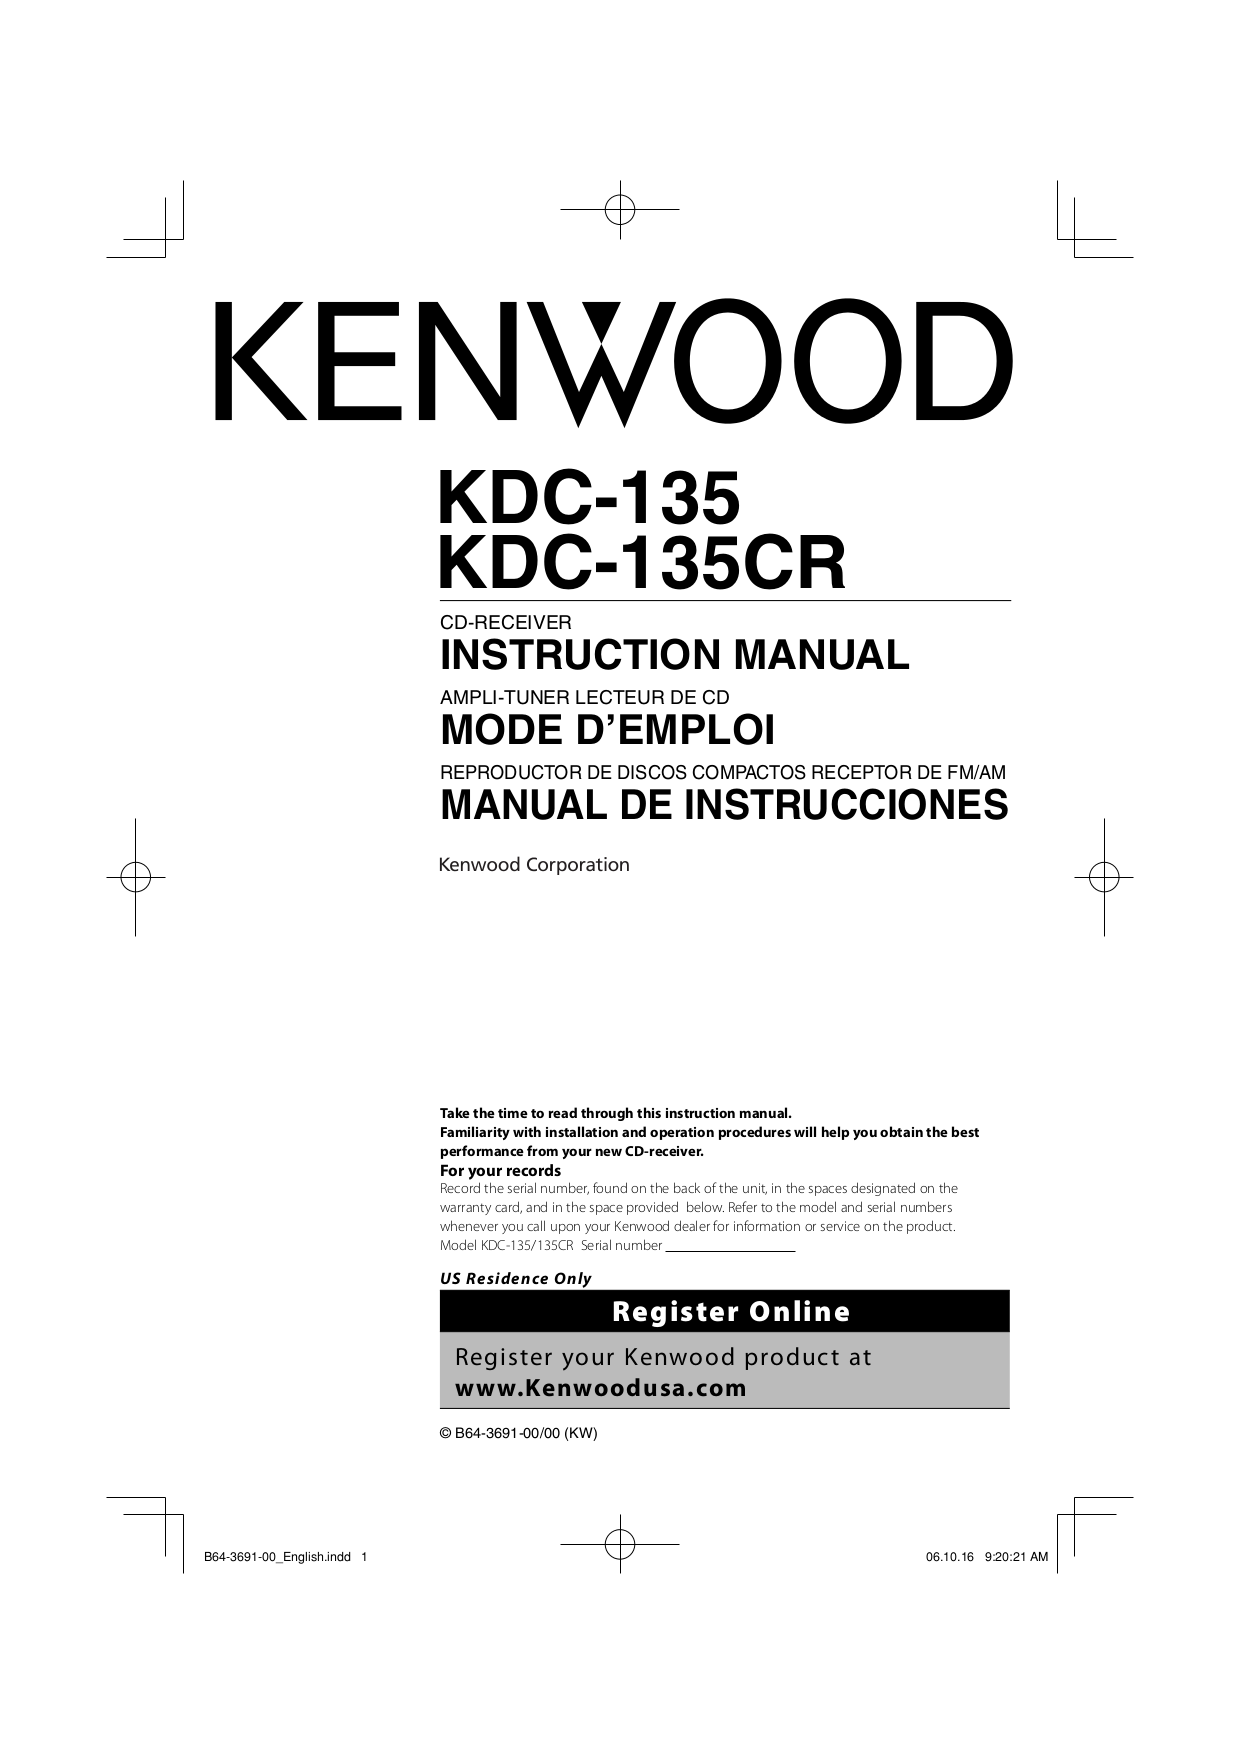 Kenwood Kac 8105d Wiring Diagram 32 Images Car Stereo Diagrams Radio B64 3691 00 00pdf 0 Download Free Pdf For Kdc 135 Receiver Manual